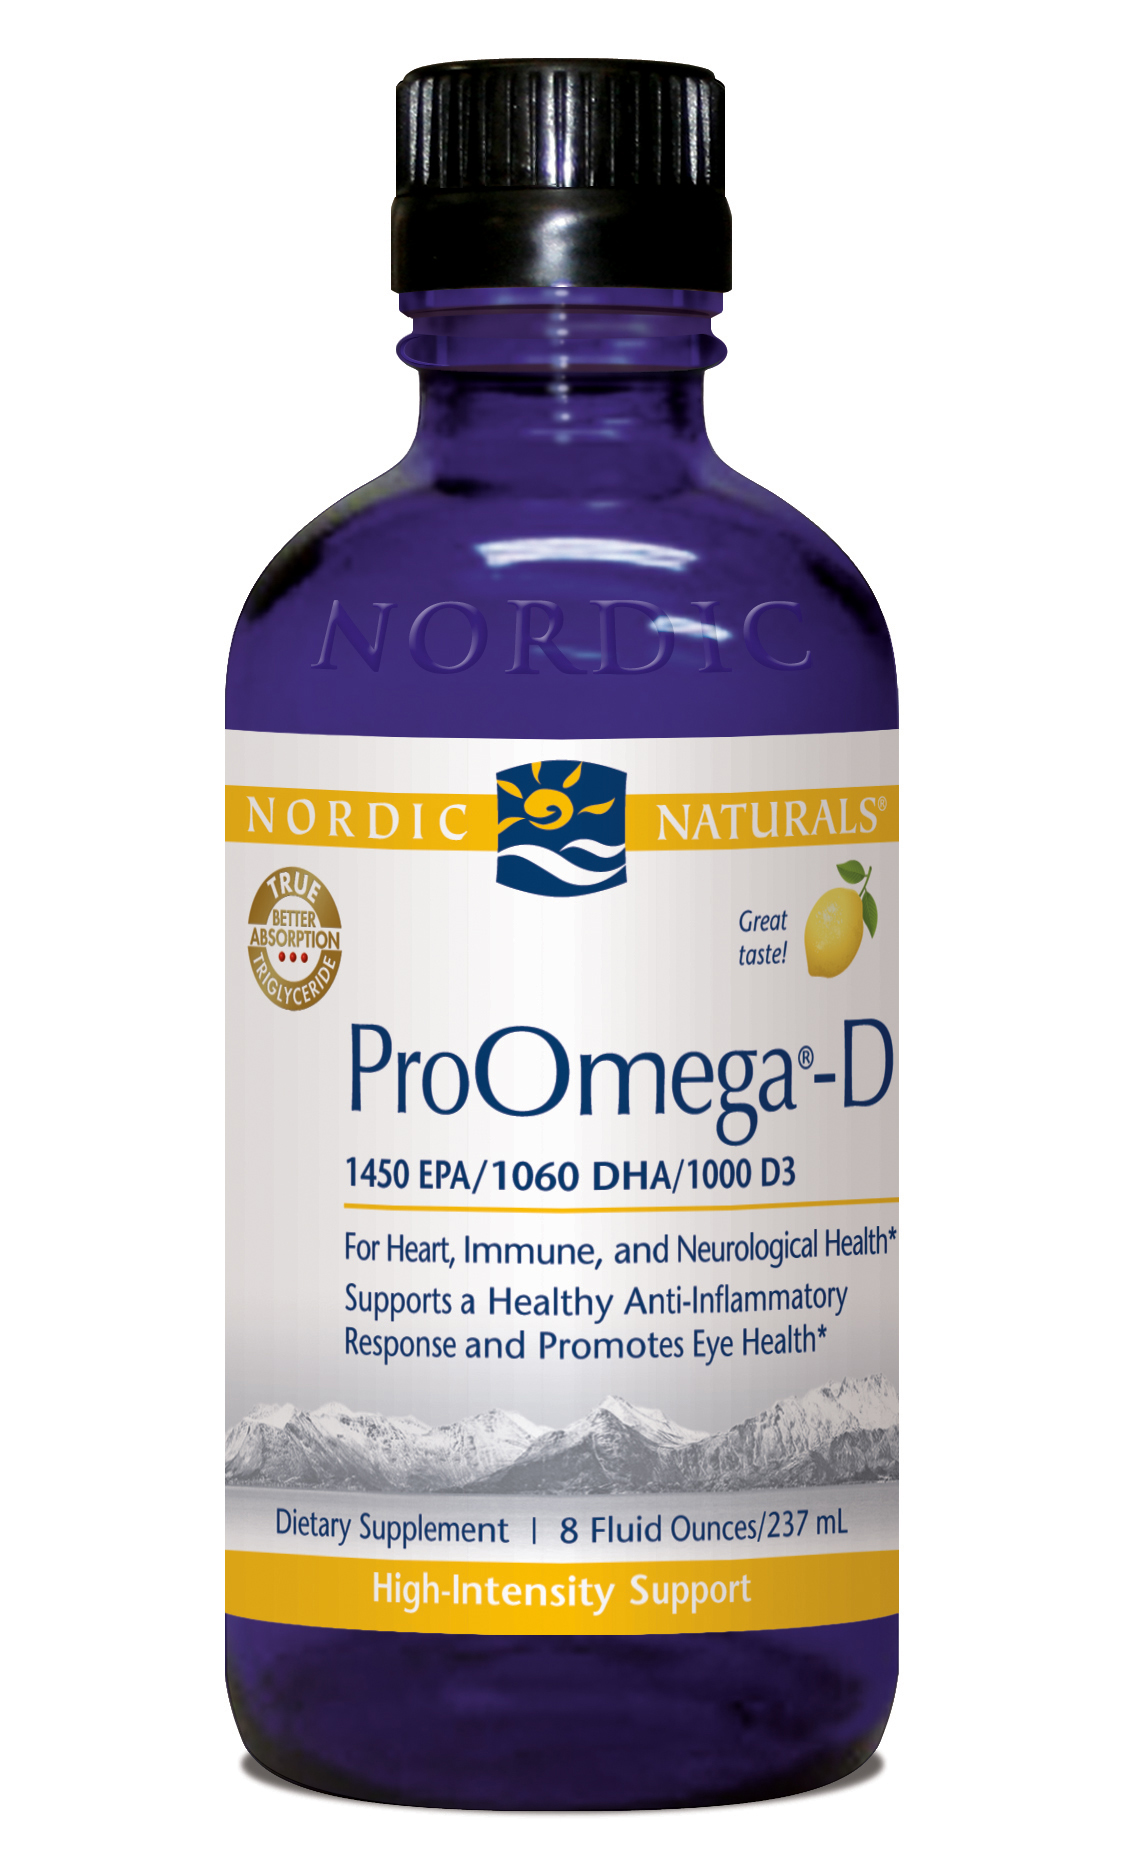 ProOmega-D Liquid from Nordic Naturals nourishes the body with essential Omega-3s and Vitamin D3..